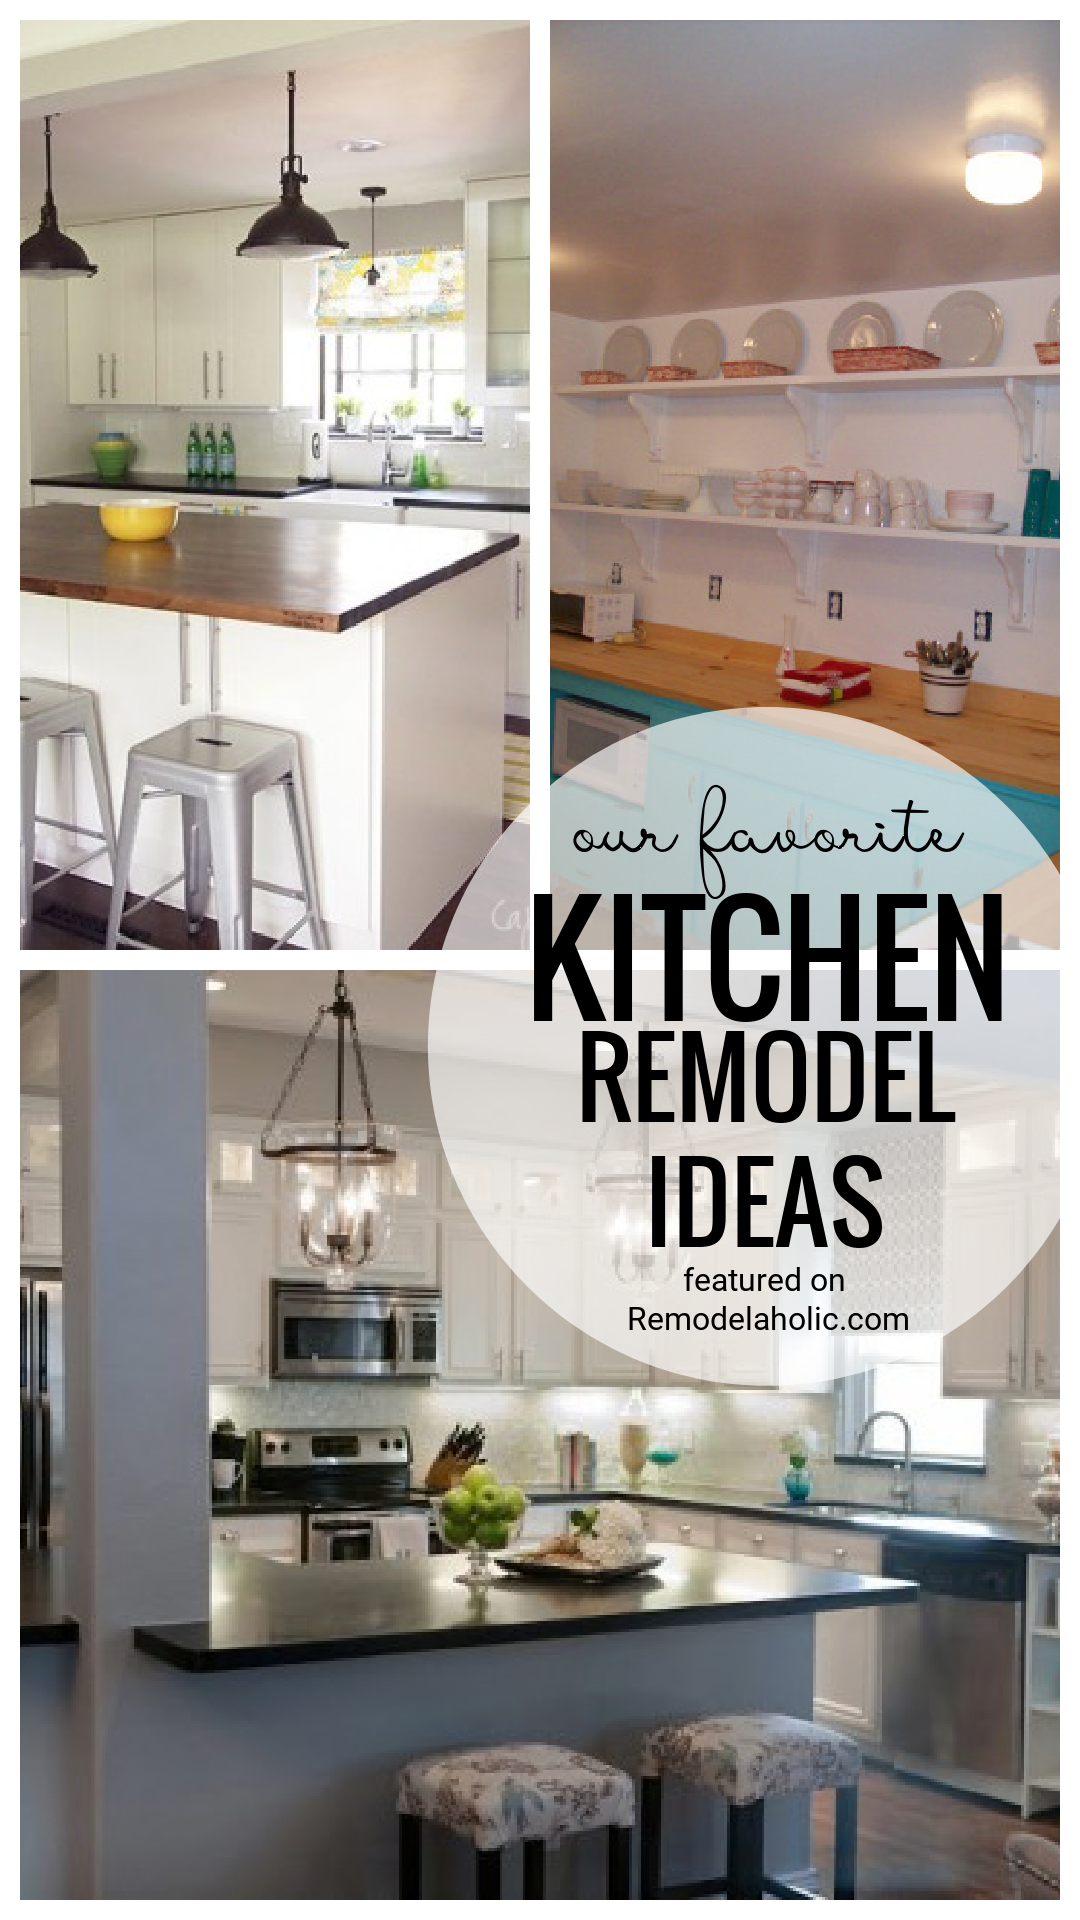 Kitchen Remodeling Ideas Featured On Remodelaholic.com